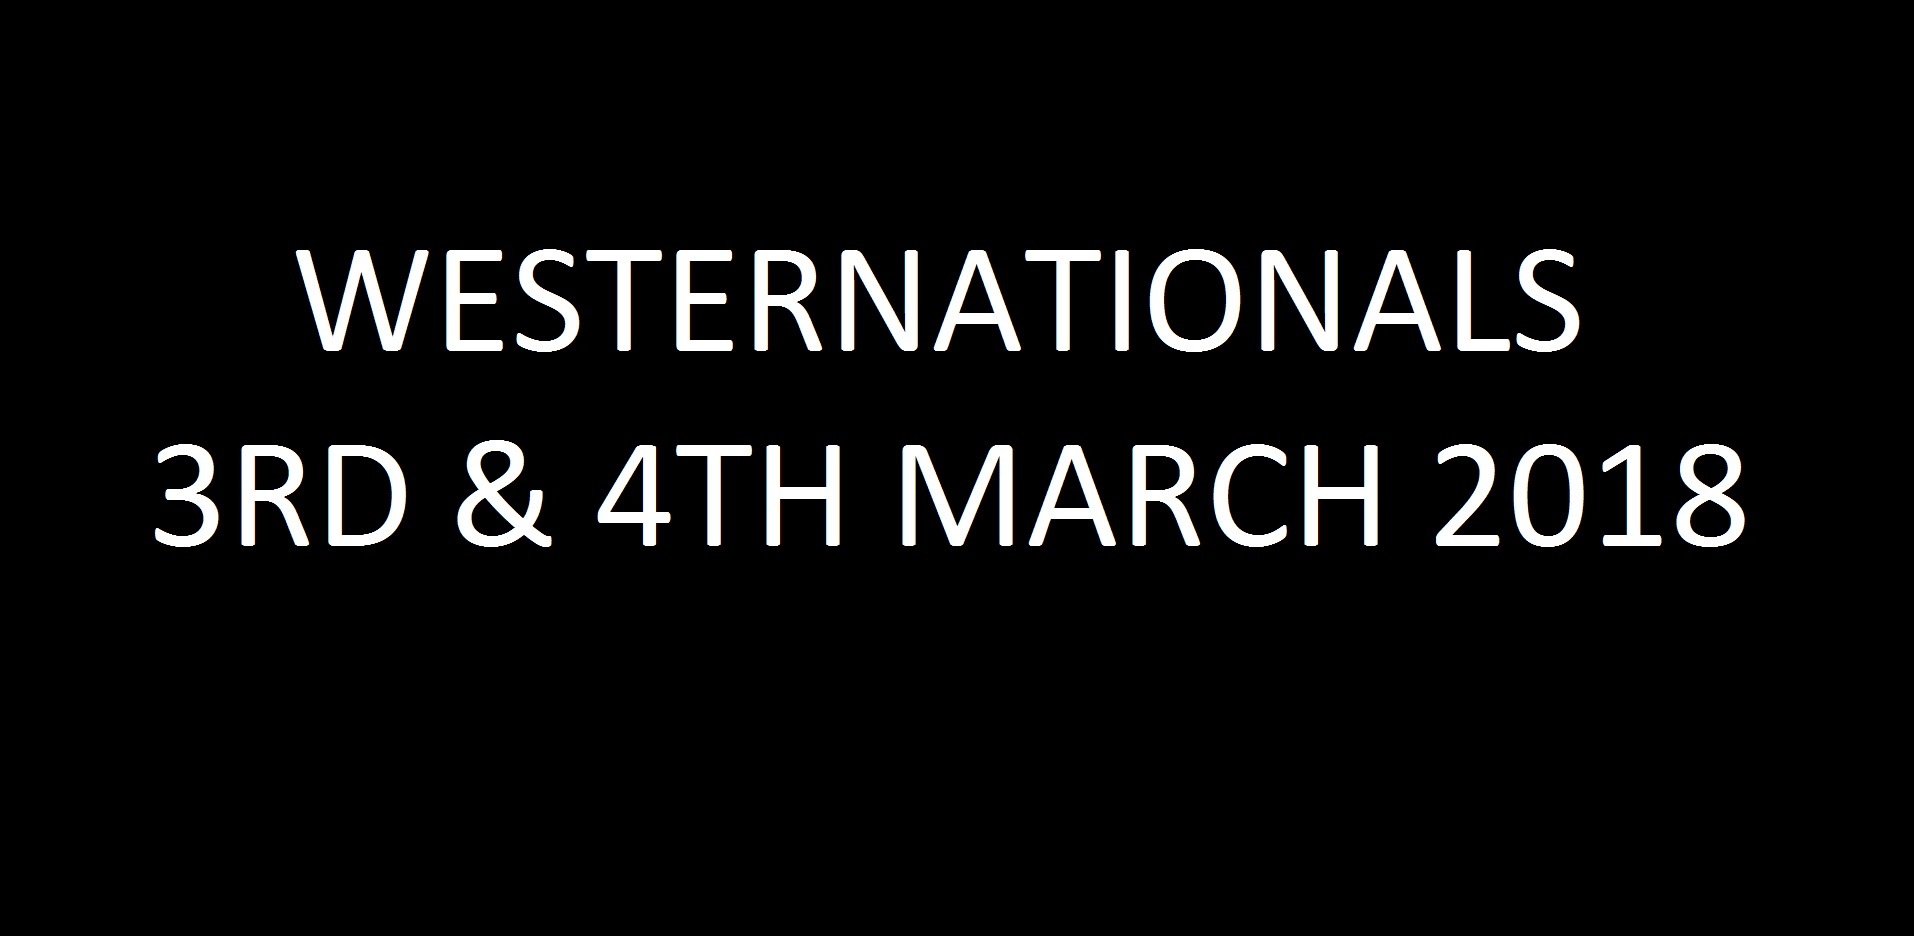 07. Westernationals - 3rd & 4th March 2018 Image